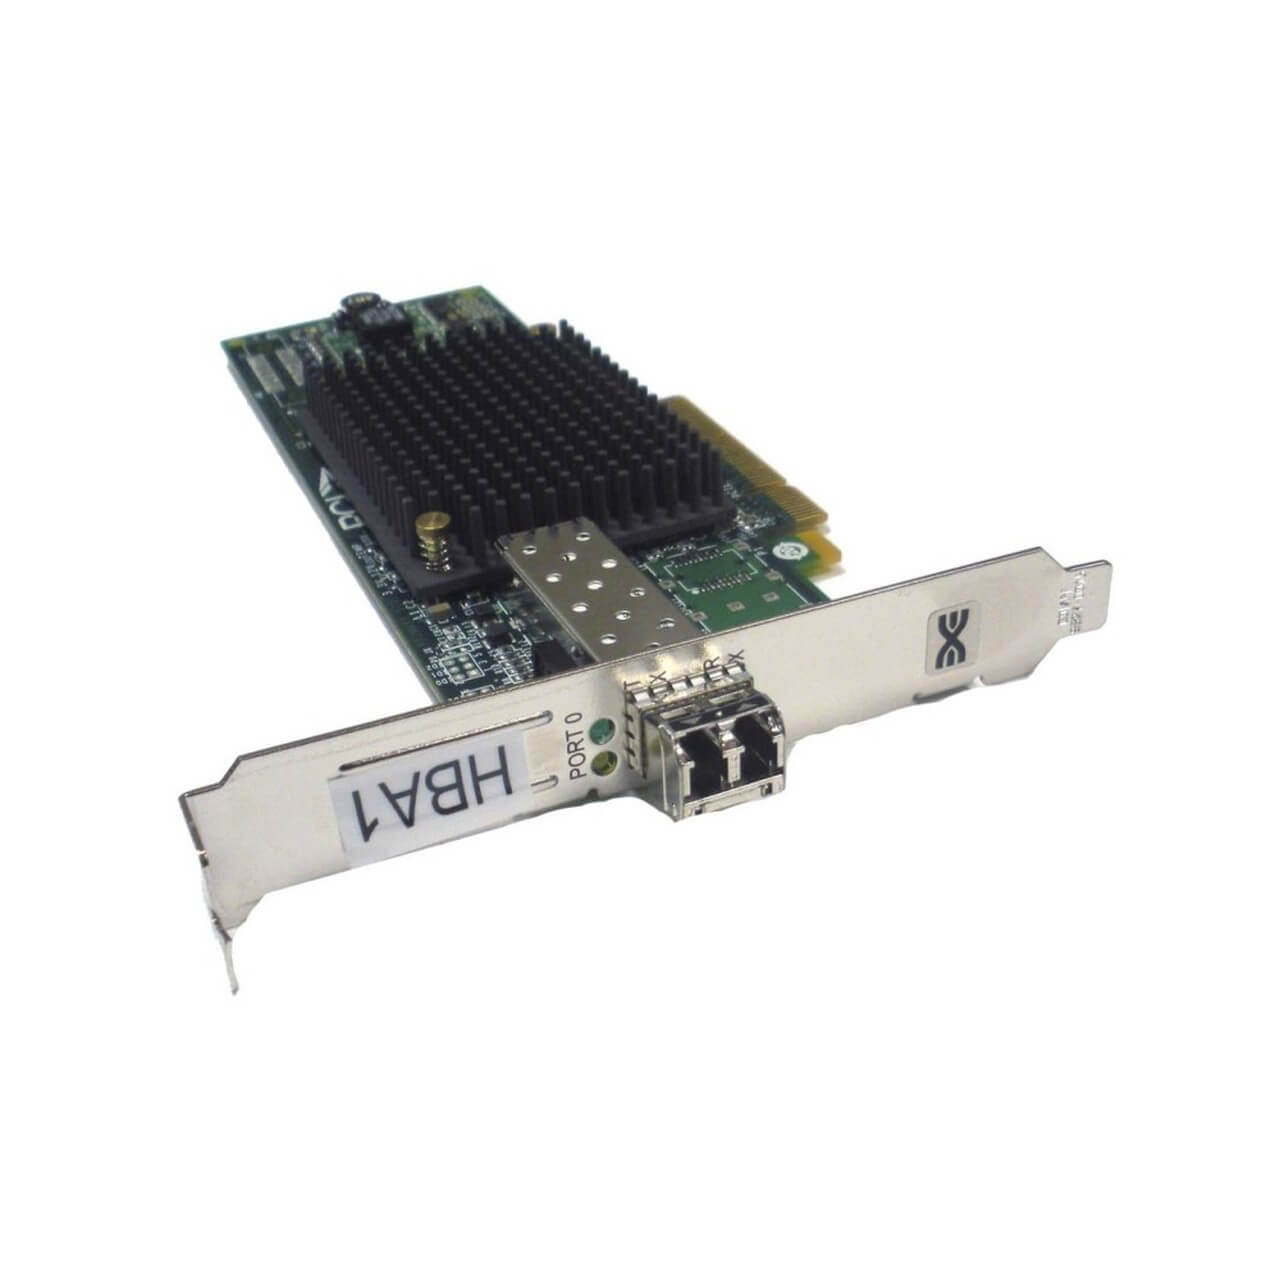 Buy & save on refurbished Emulex adapters for computer servers from your trusted partners at Flagship Technologies.